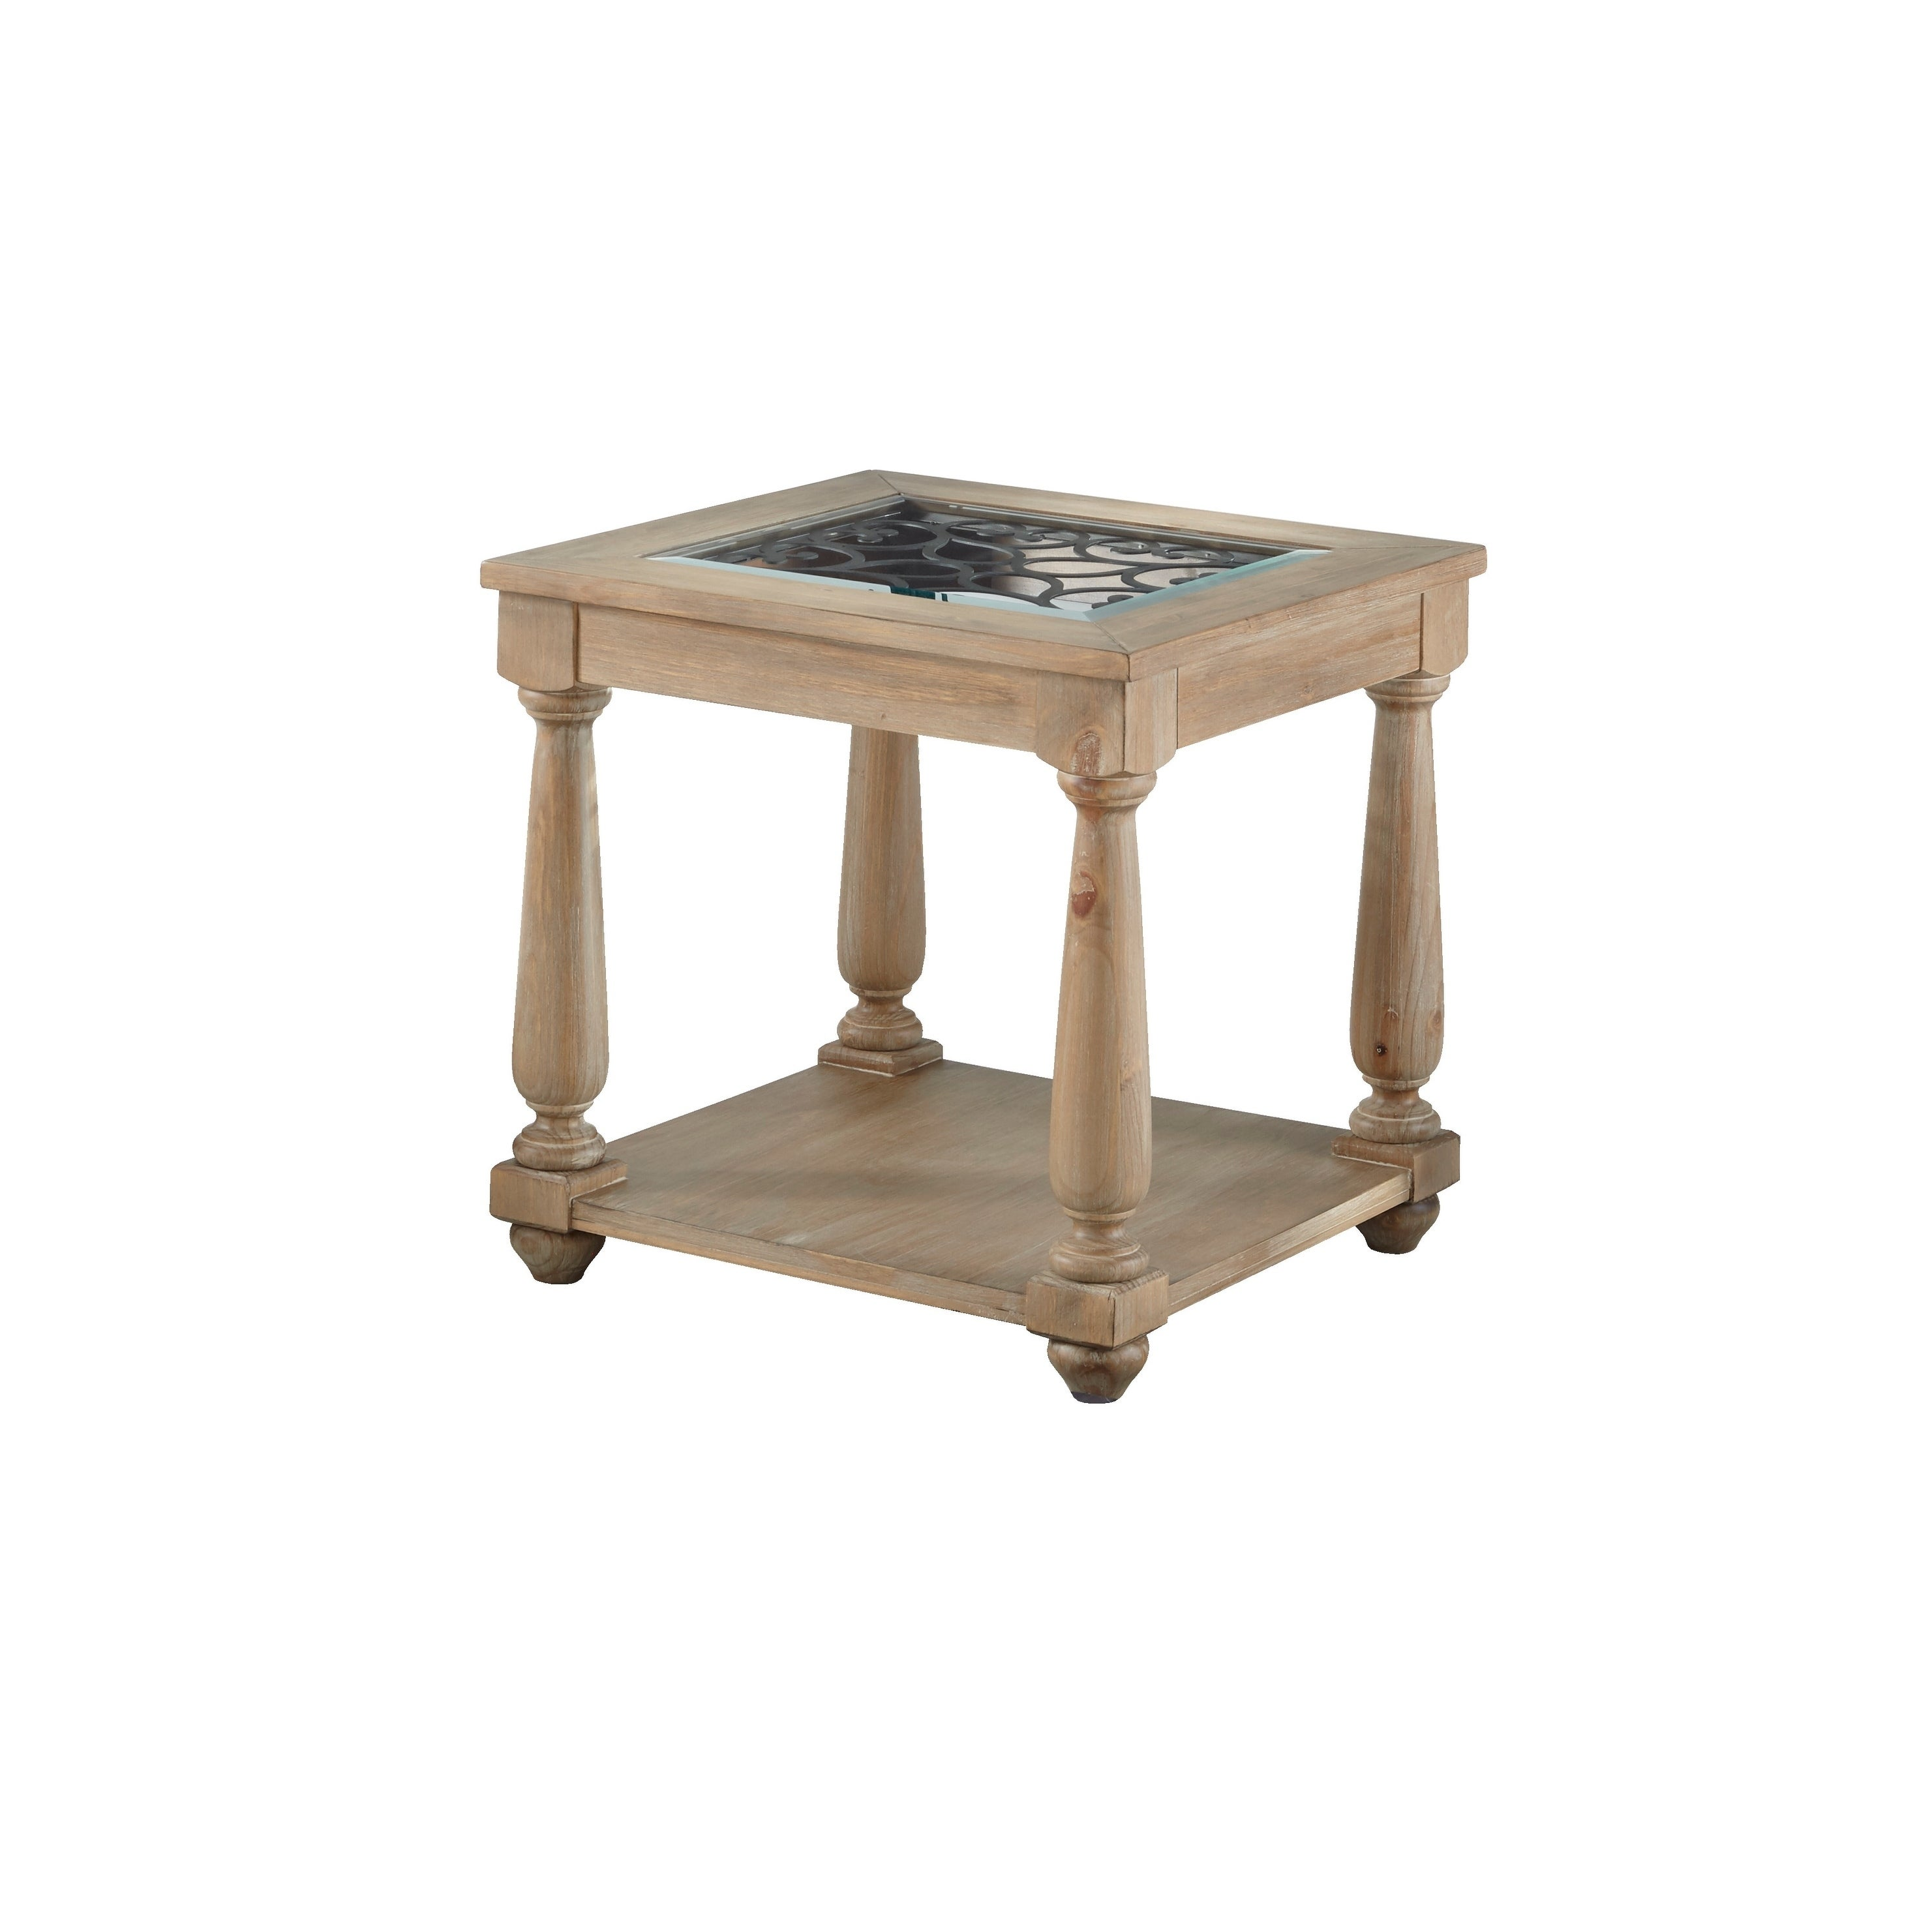 492a03dbd2f66a Shop Standard Furniture Savannah Distressed Brown Wood Glass-top End Table  - Free Shipping Today - Overstock - 26280376